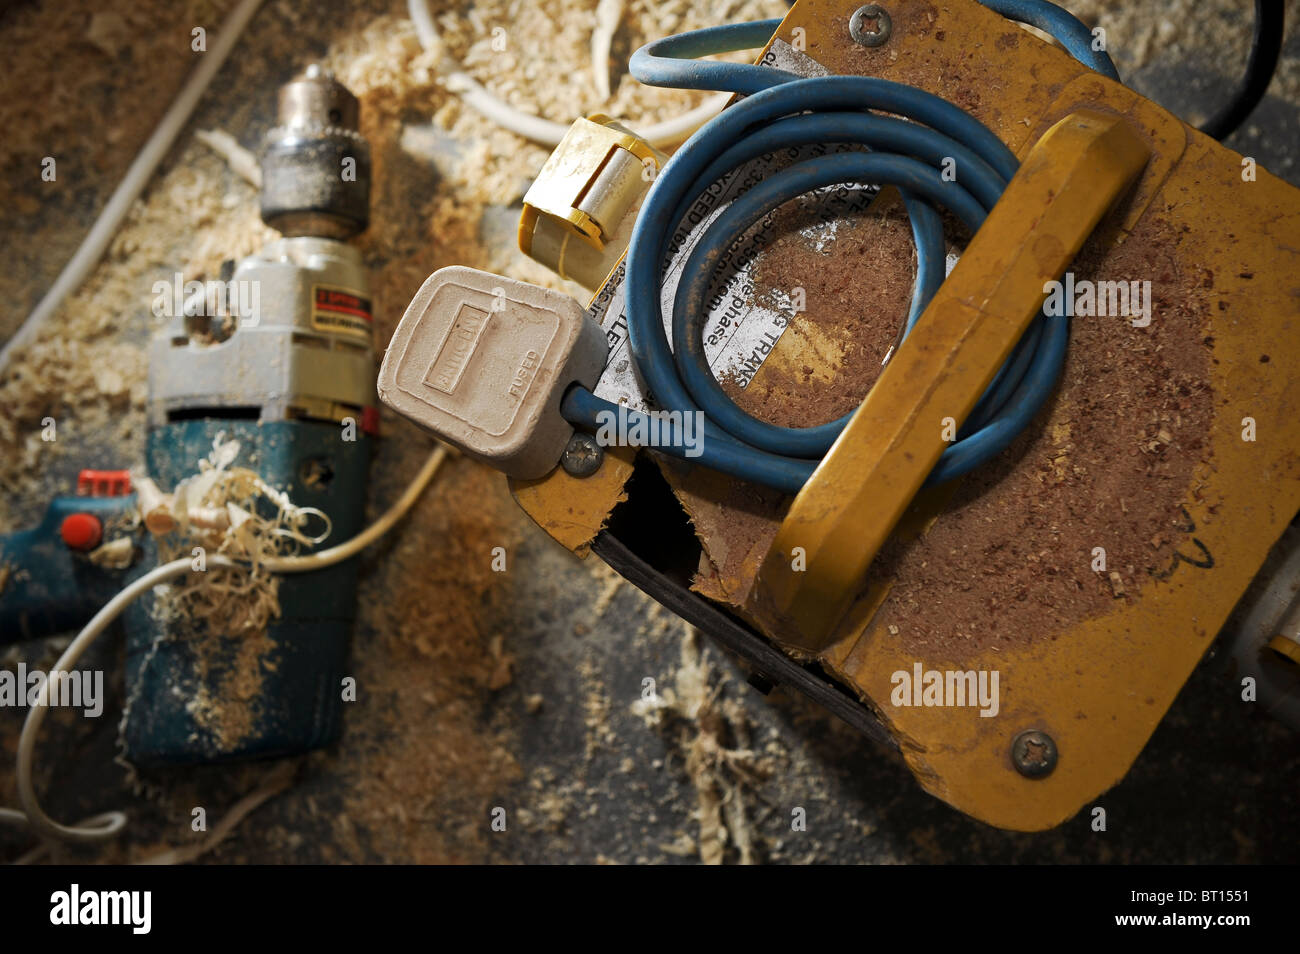 dangerous and messy workshop with unsafe power tools, such as a damaged drill and transformer  which creates a fire - Stock Image